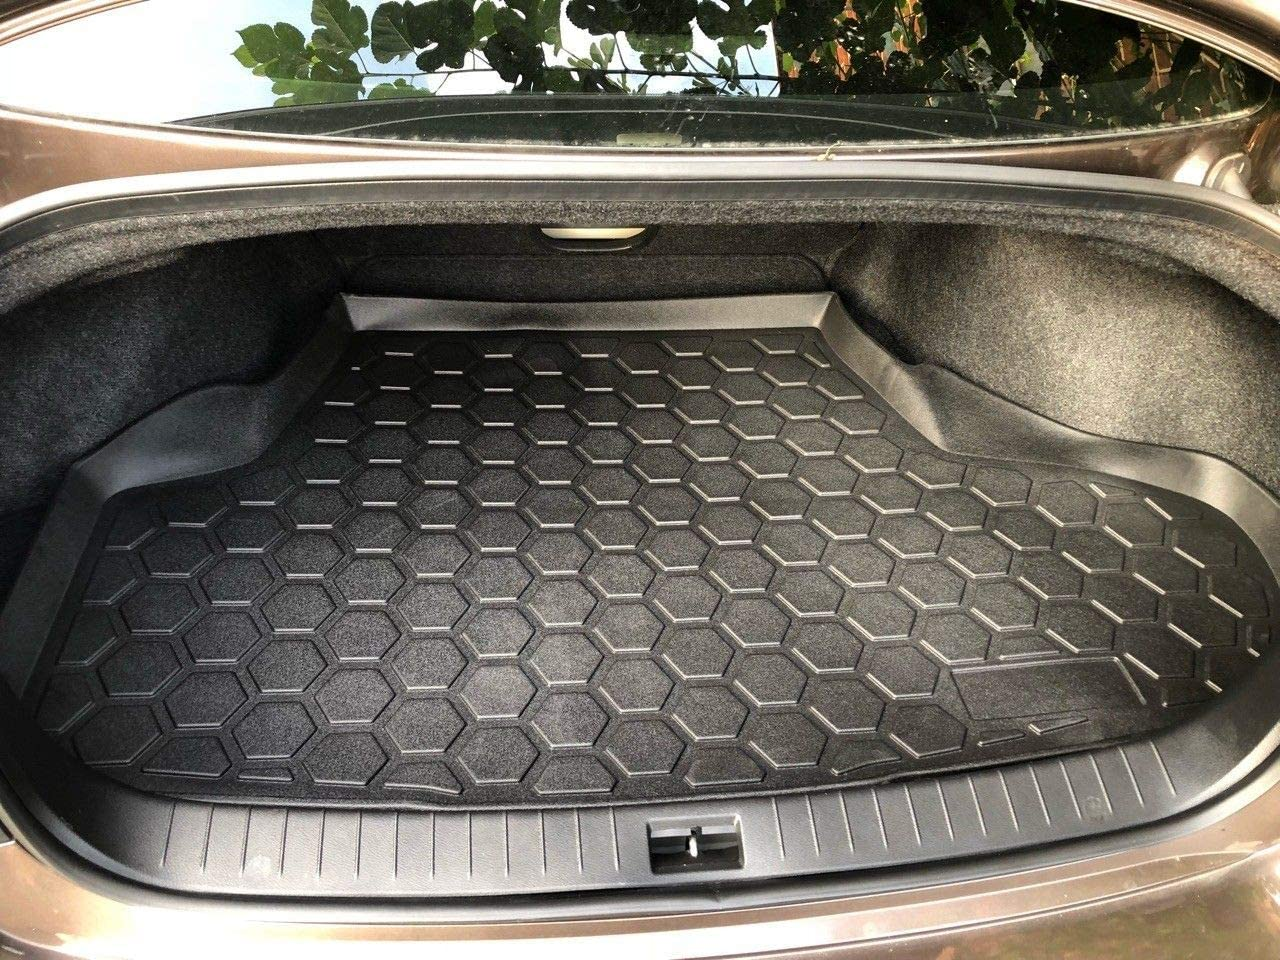 Rear Trunk Liner Tray Mat Pad for INFINITI Q50 2014 2015 2016 2017 2018 2019 2020 Floor Cargo Tray Protection Dirt Mud Snow All Weather Season Waterproof WaterResistant 3d Laser Measured Custom Fit